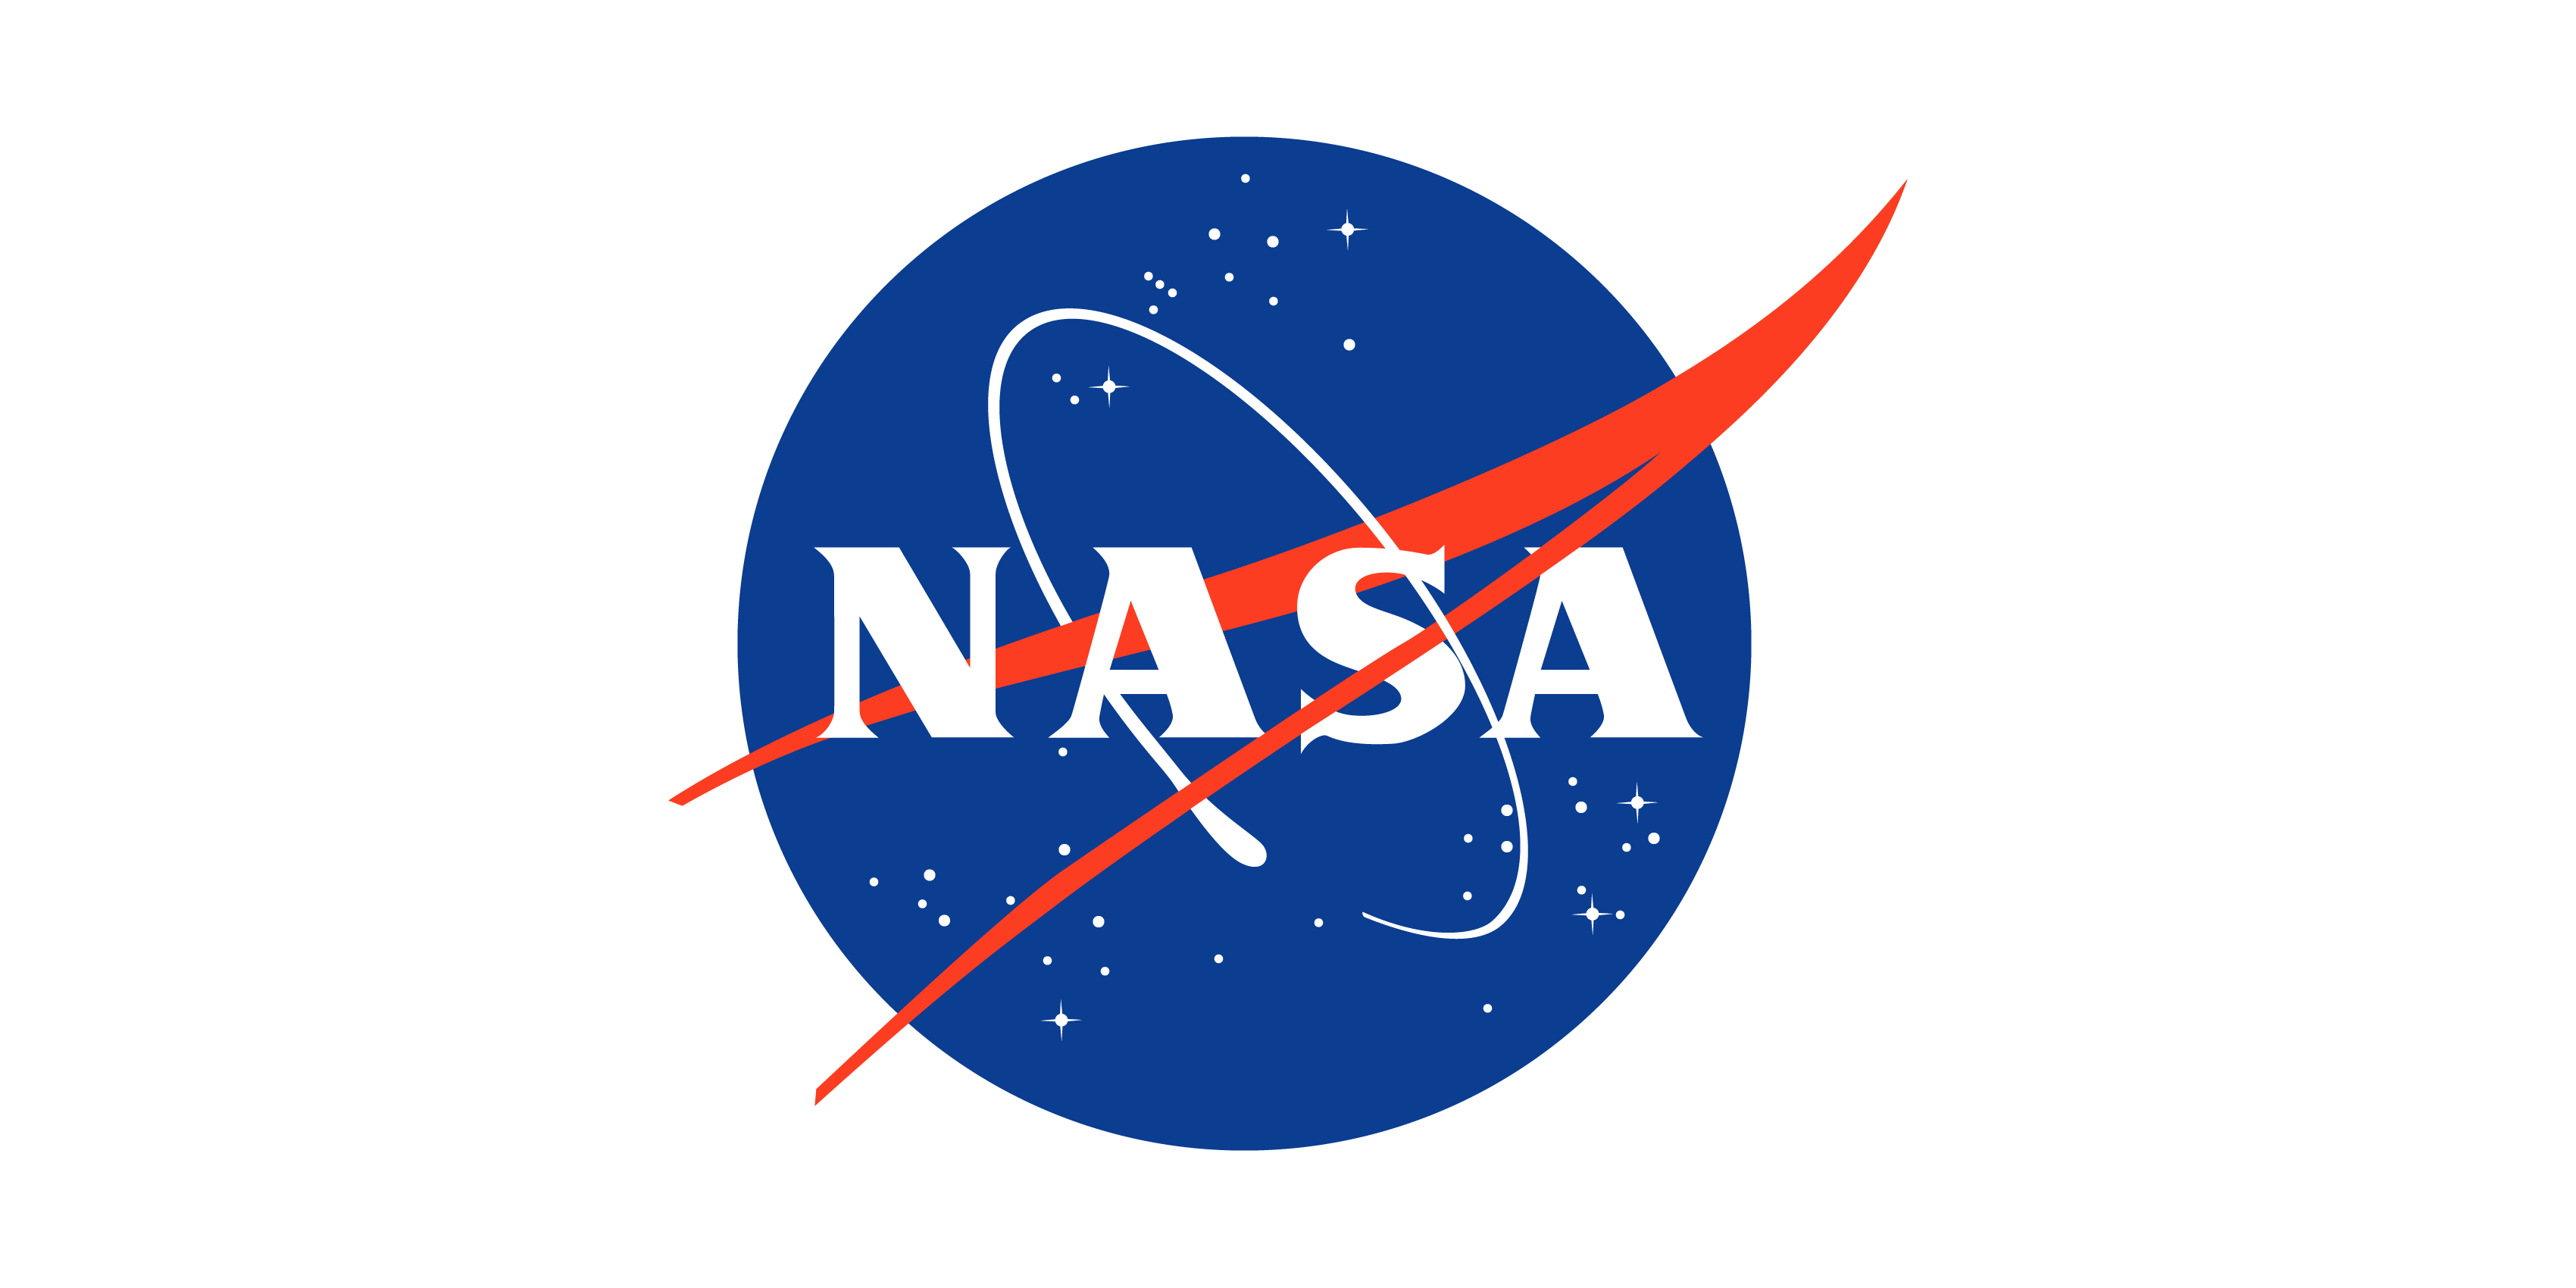 The Nasa logo features a blue circle with a red wishbone shaped swish and the word Nasa